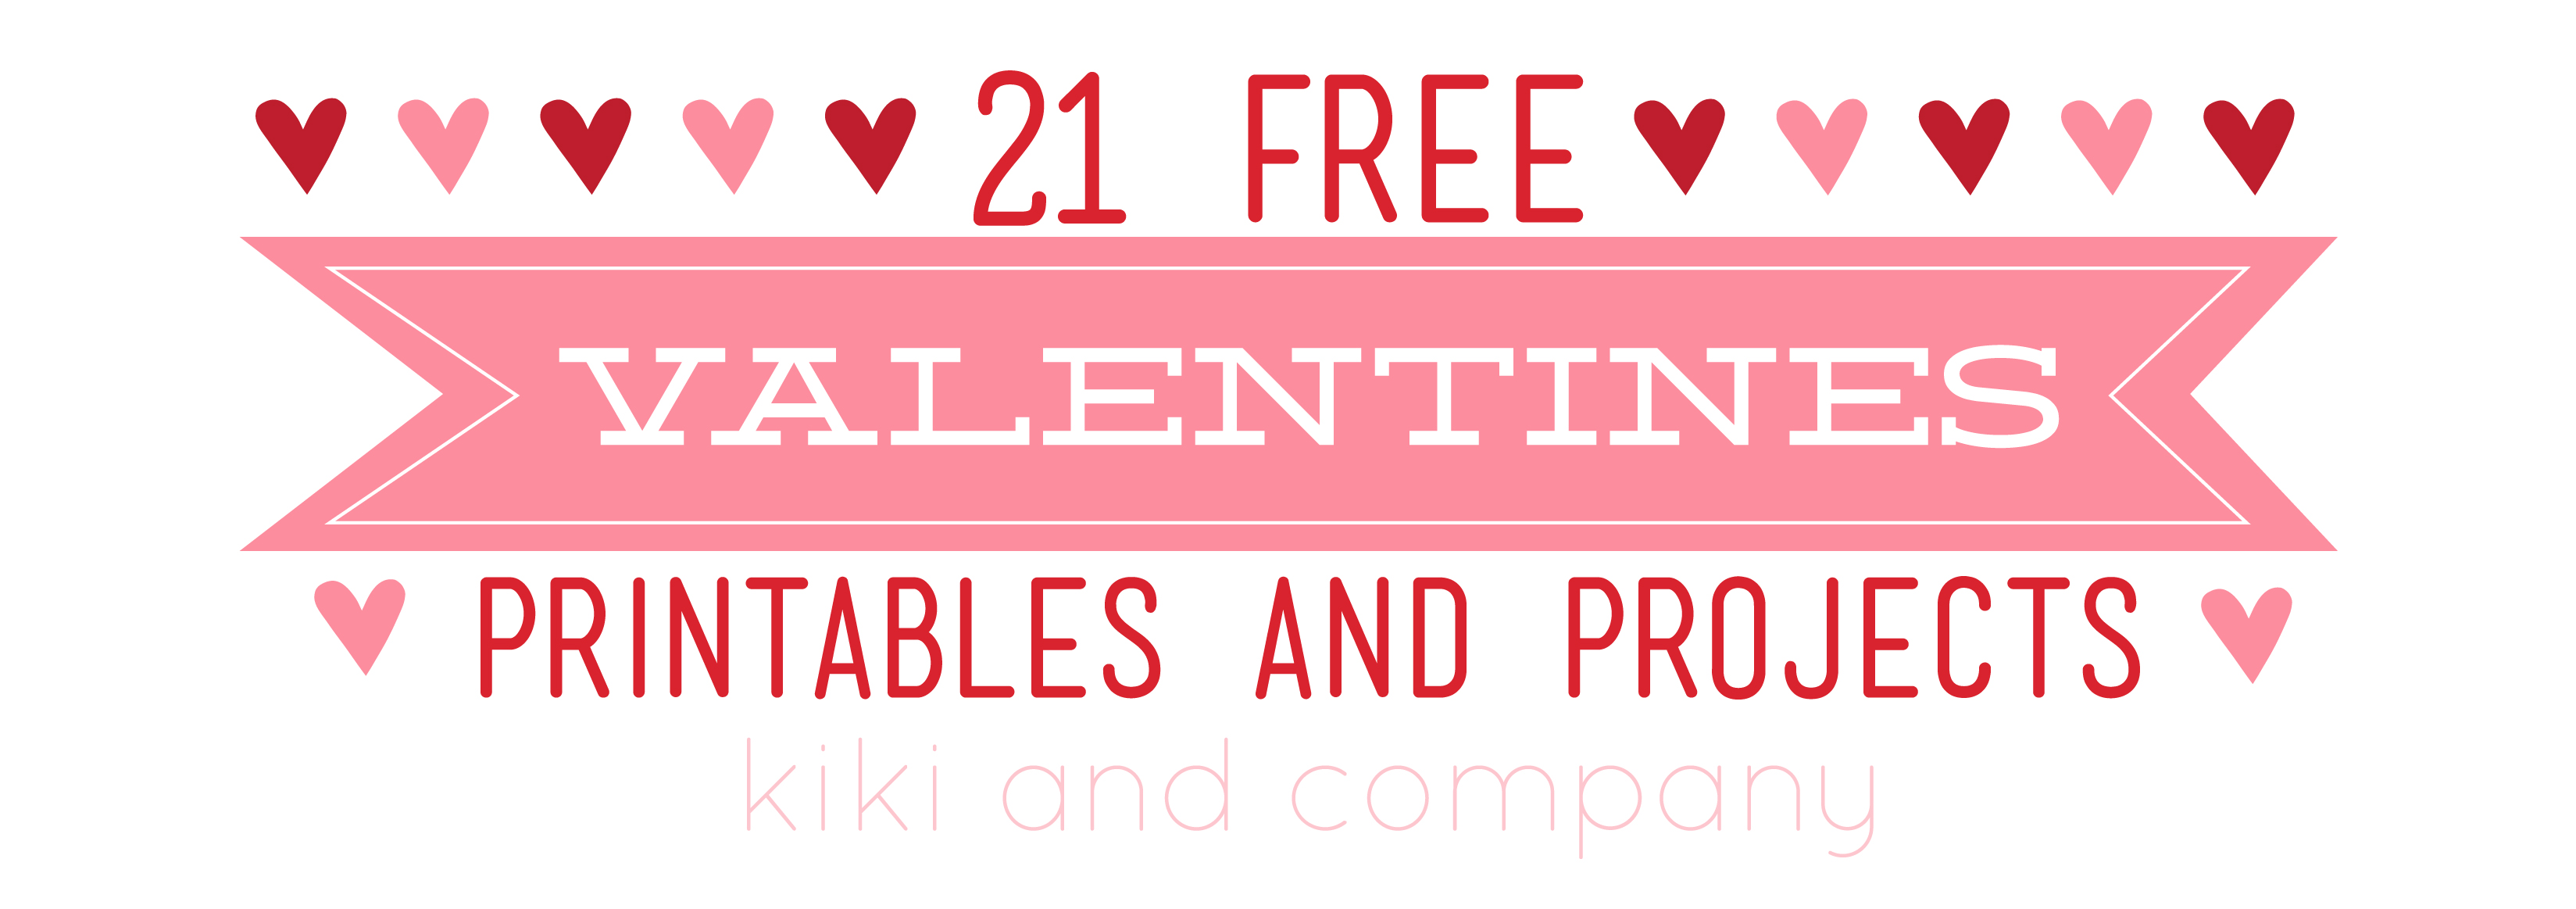 21 free valentines printables and projects kiki company